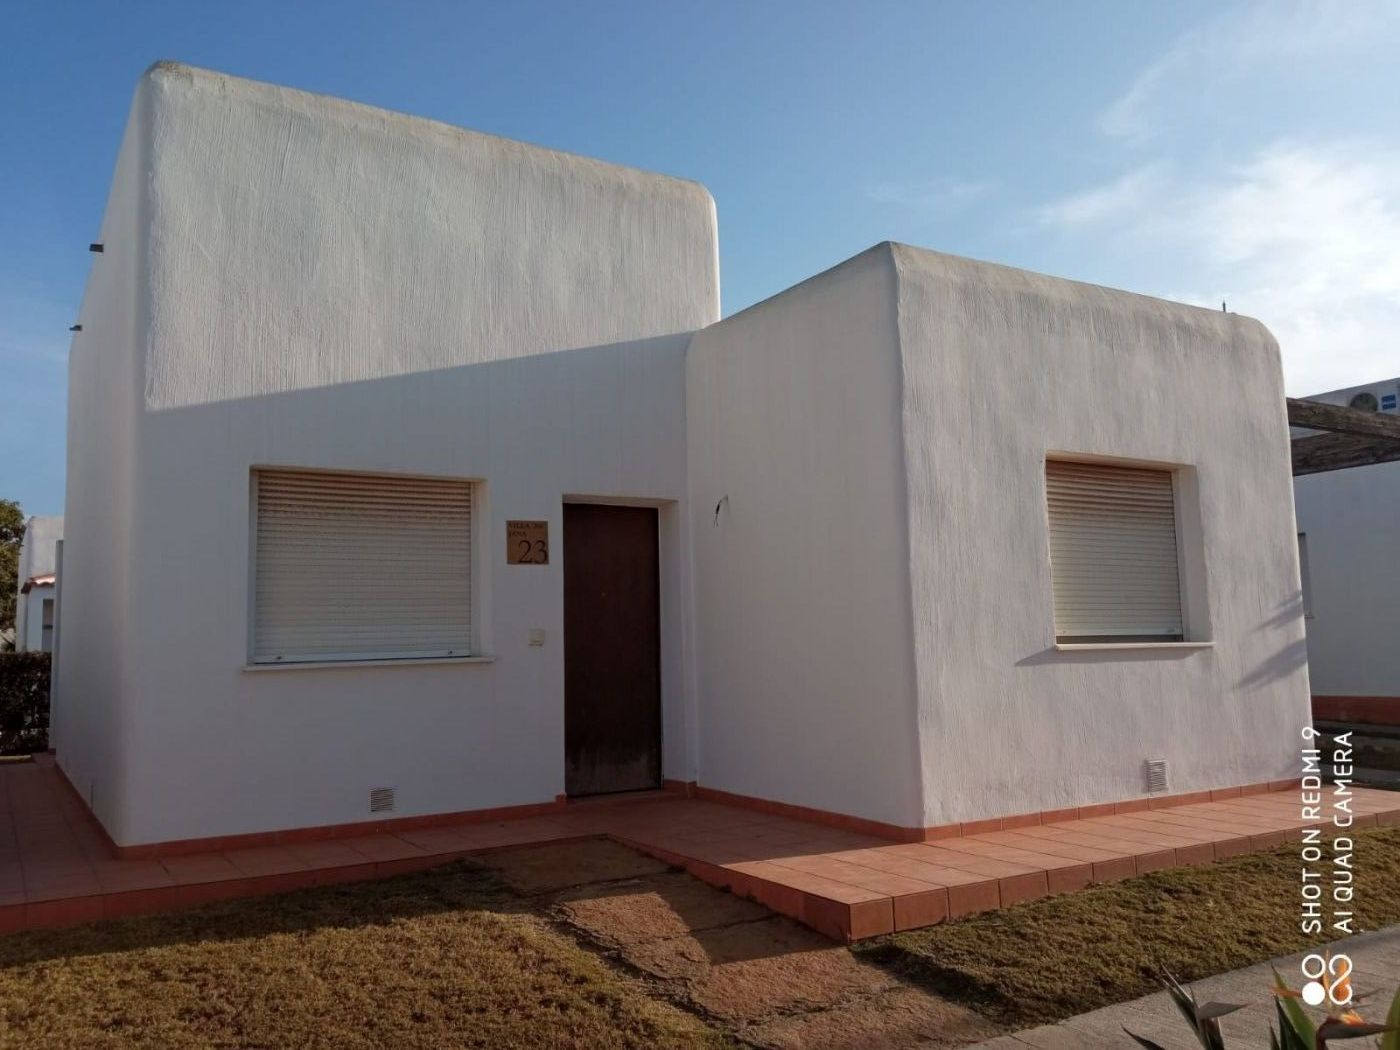 Gallery Image 25 of Villa Jana in need of some TLC for sale at bargain price